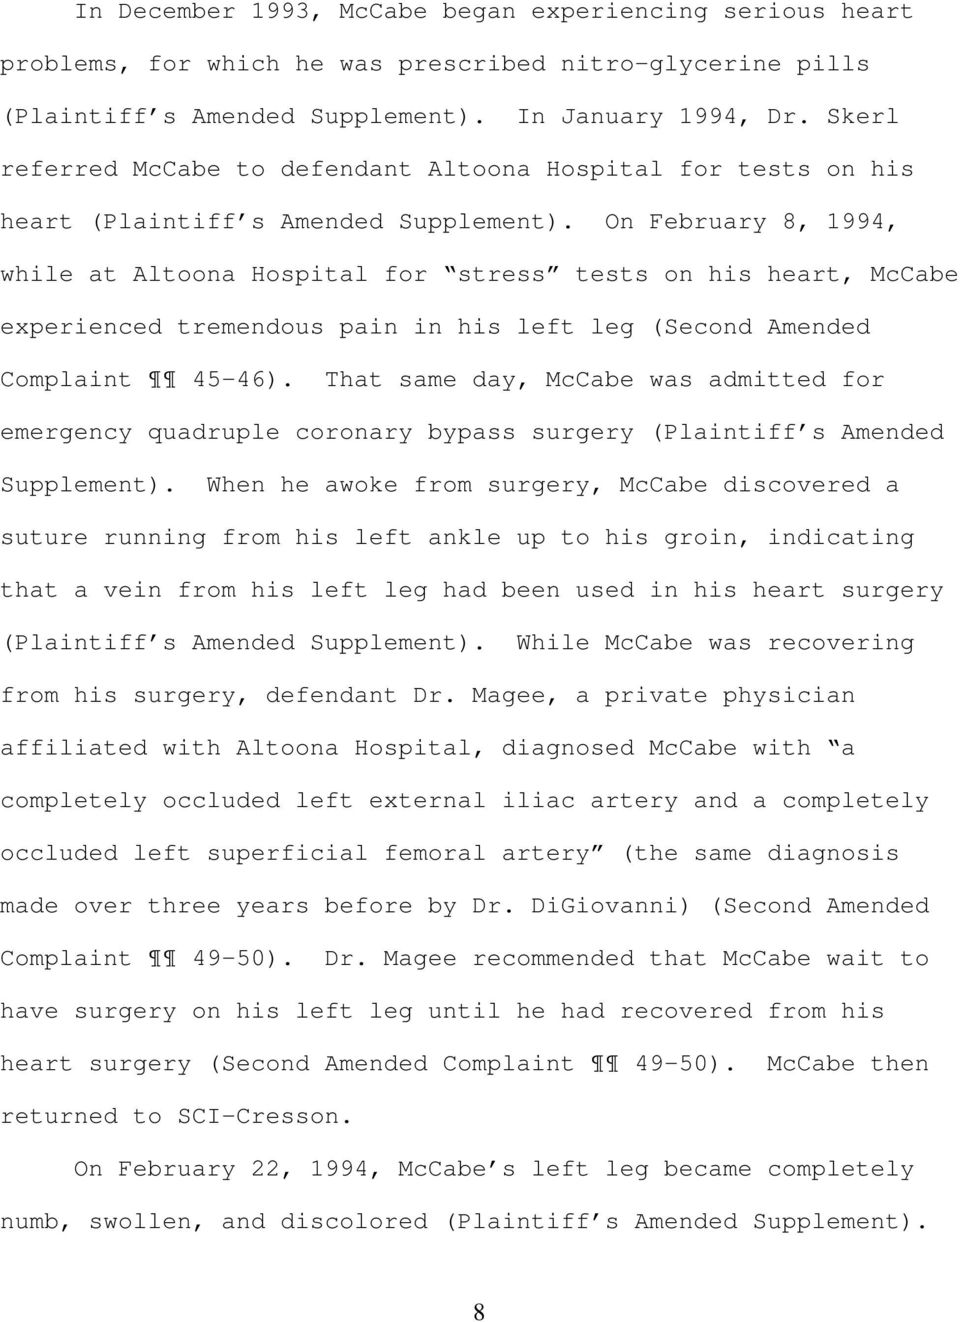 On February 8, 1994, while at Altoona Hospital for stress tests on his heart, McCabe experienced tremendous pain in his left leg (Second Amended Complaint 45-46).